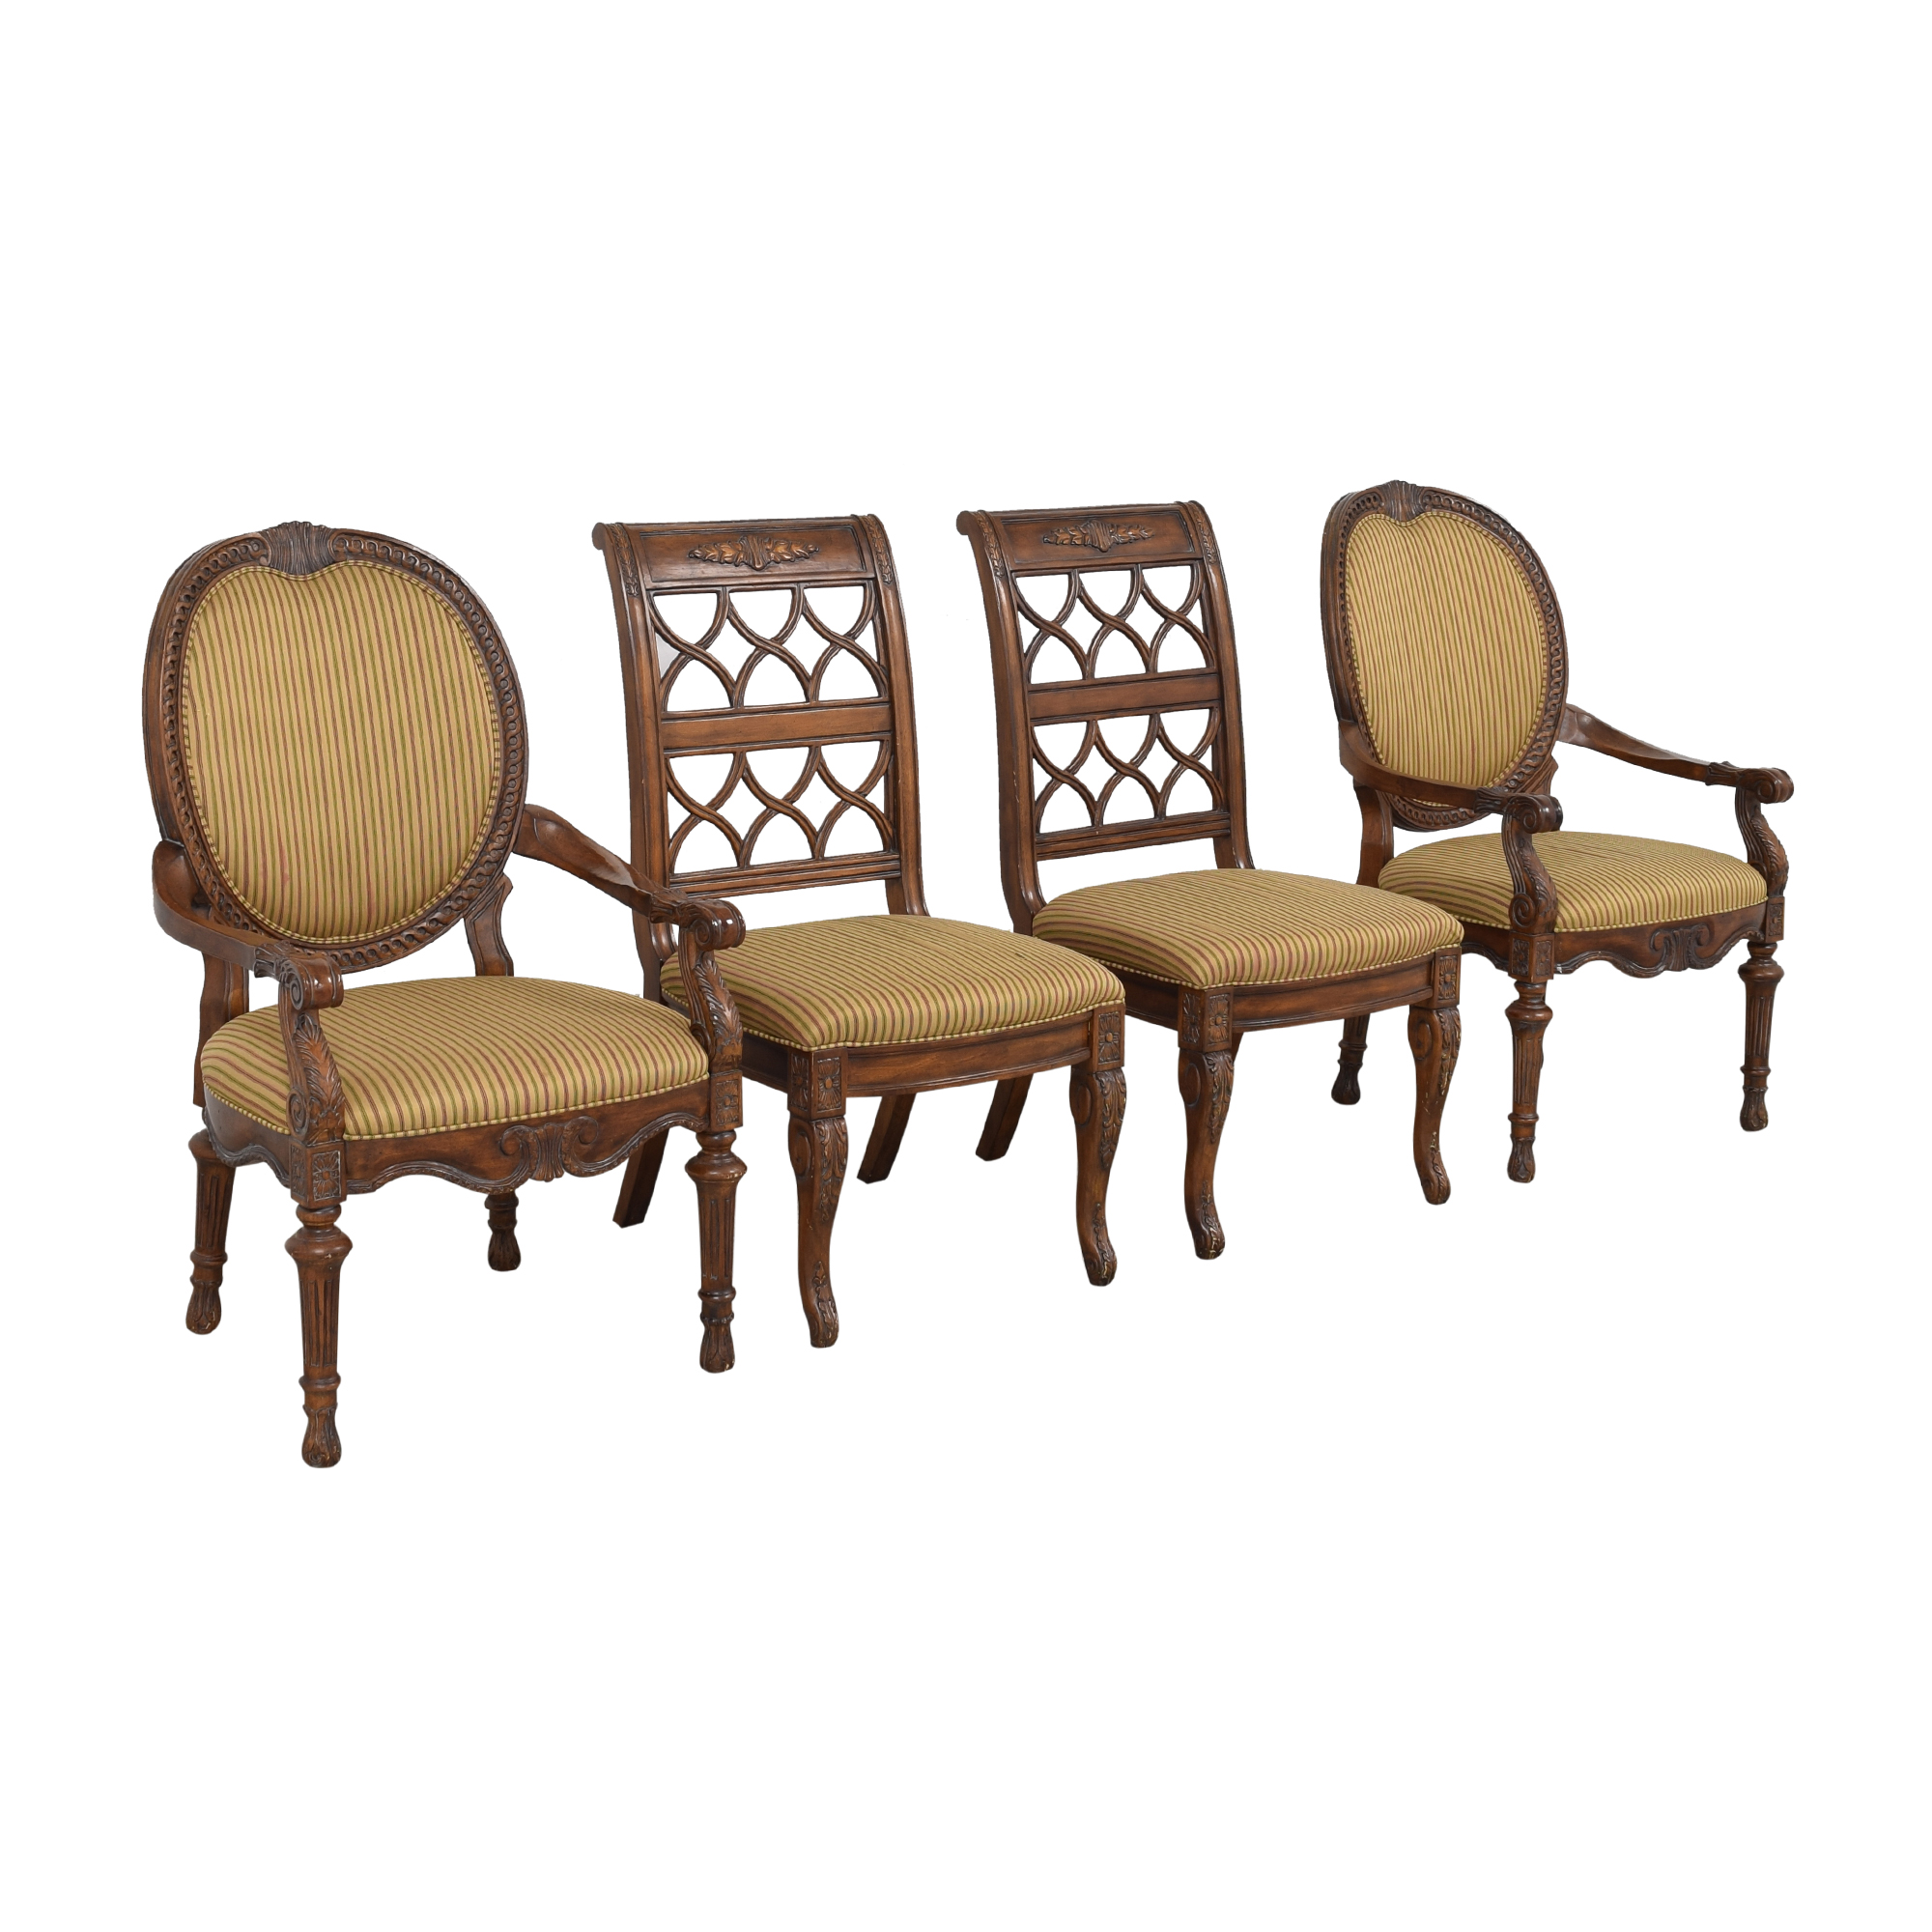 shop Drexel Heritage Drexel Heritage Dining Chairs online